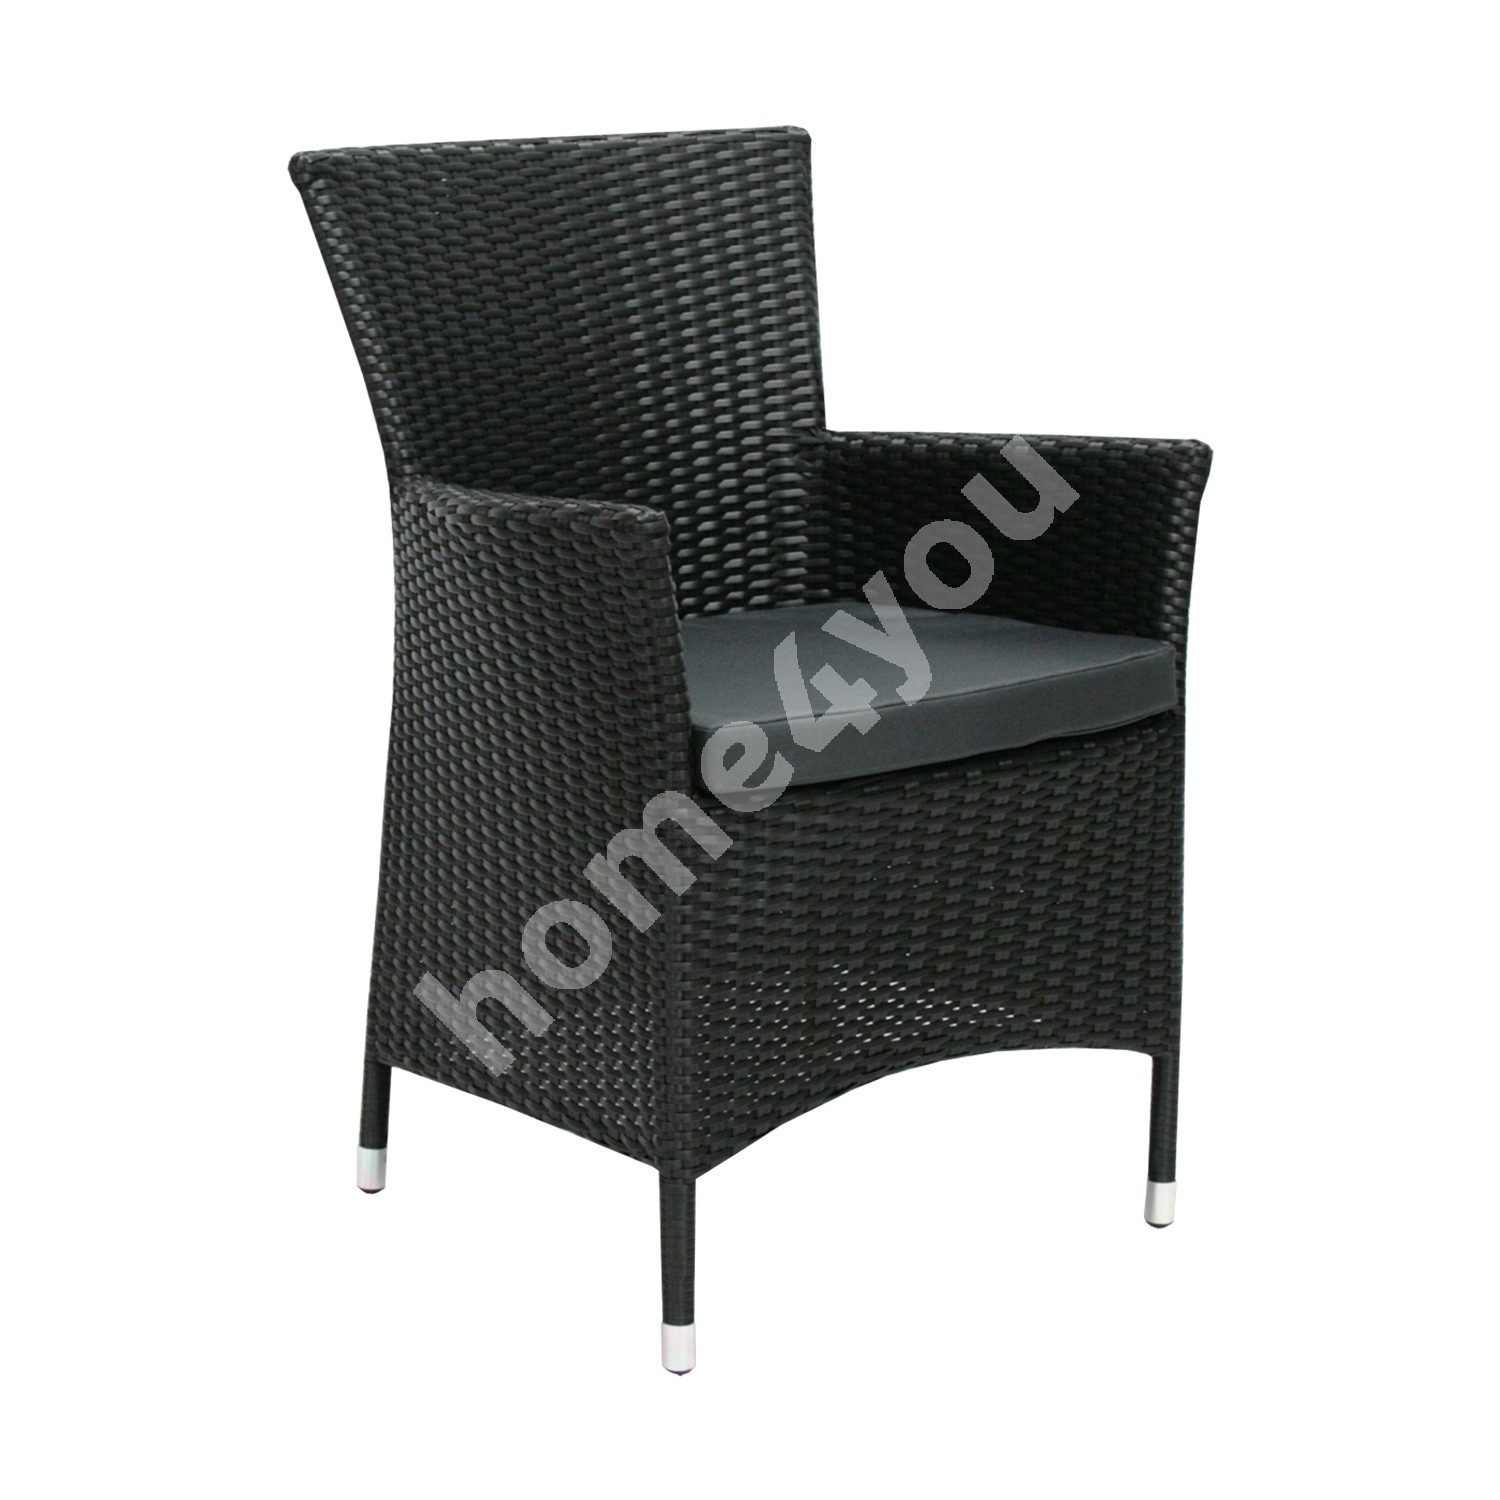 Chair WICKER-1 with cushion 61x58xH86cm, aluminum frame with plastic wicker, color: black